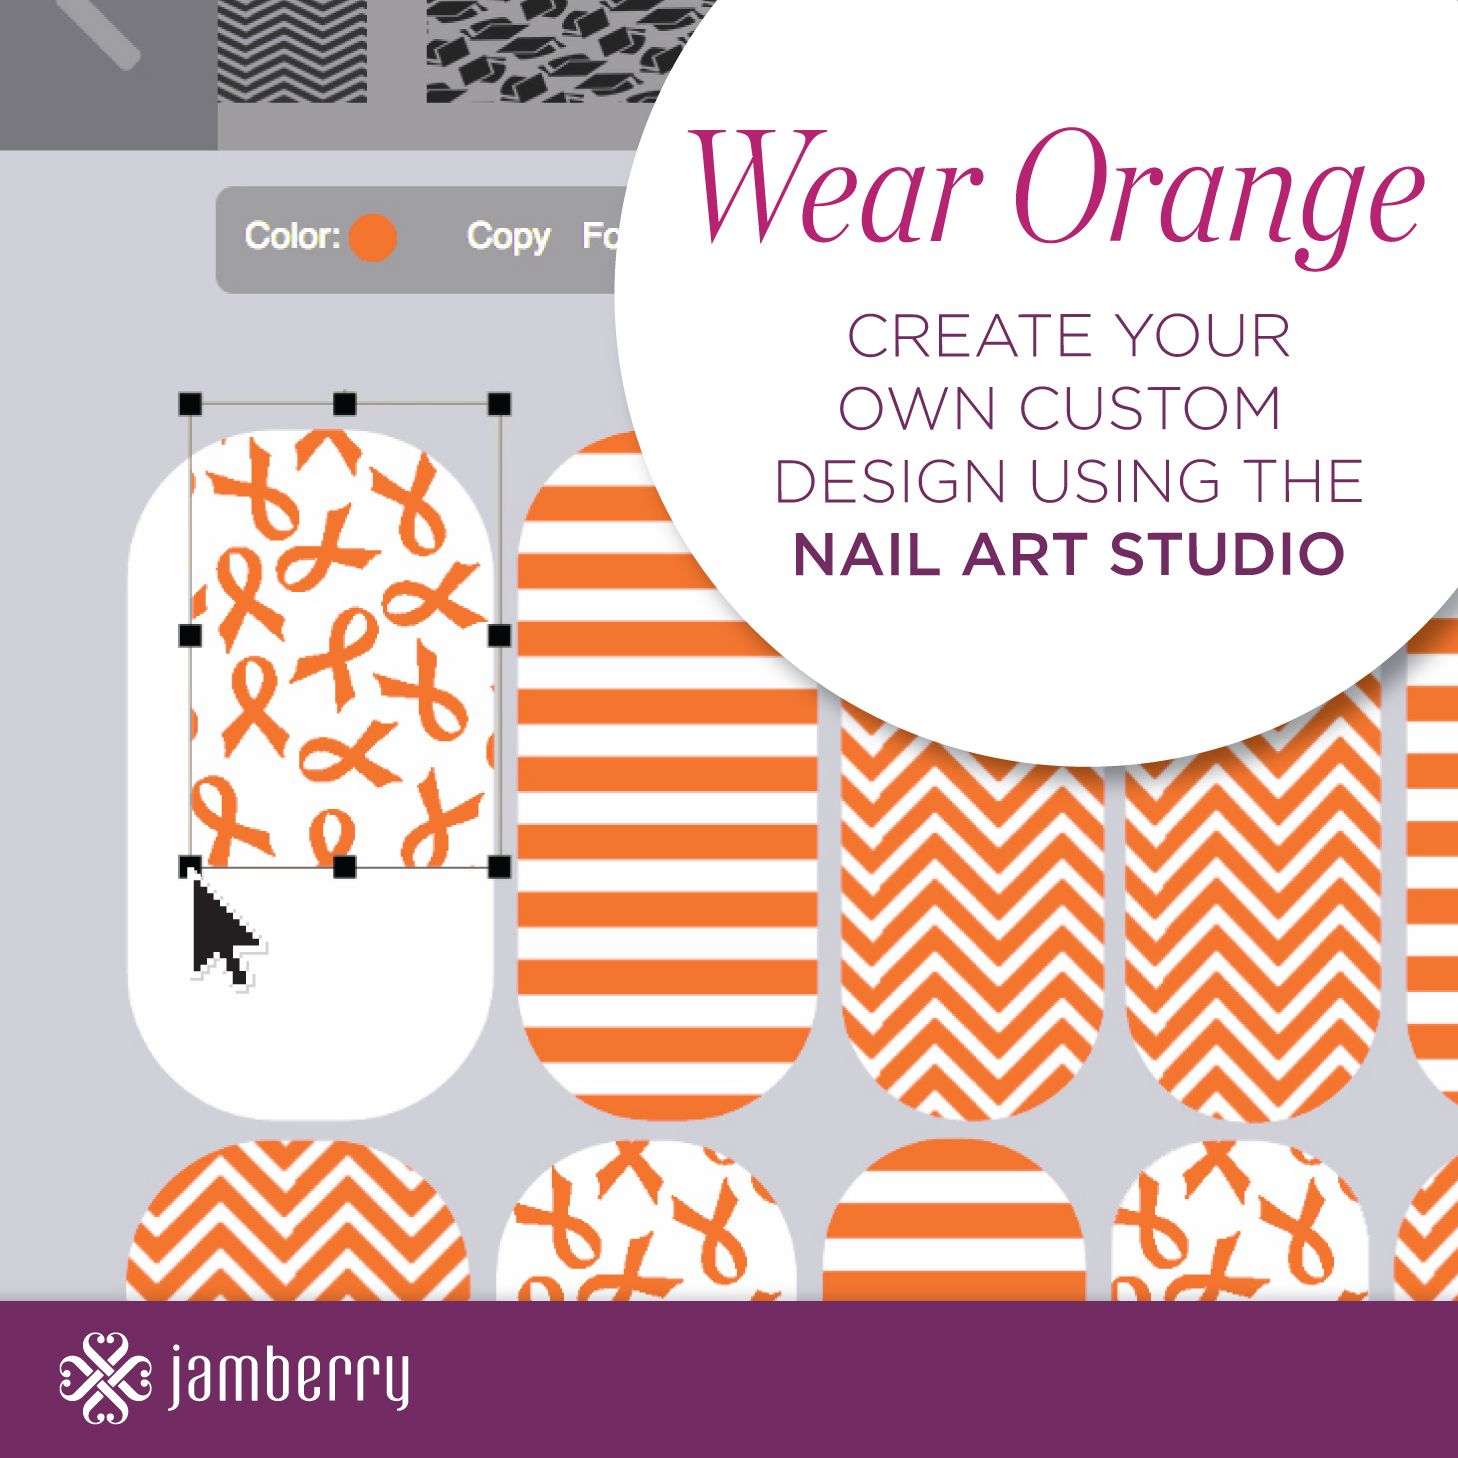 Design Your Own Nails In Orange With Help From The Nail Art Studio